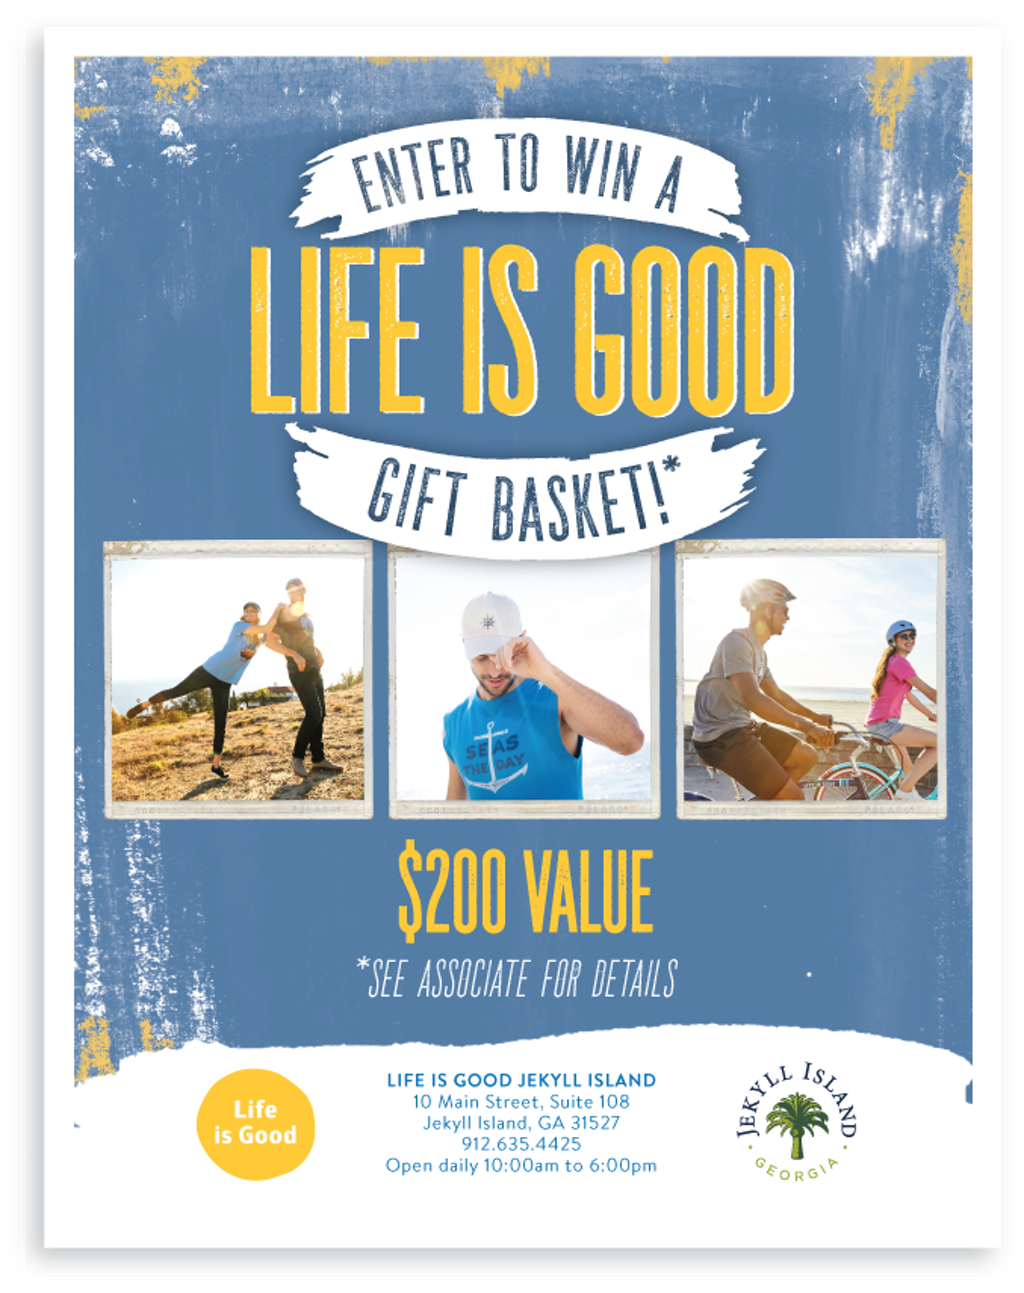 Enter to Win, Life is Good, 2018